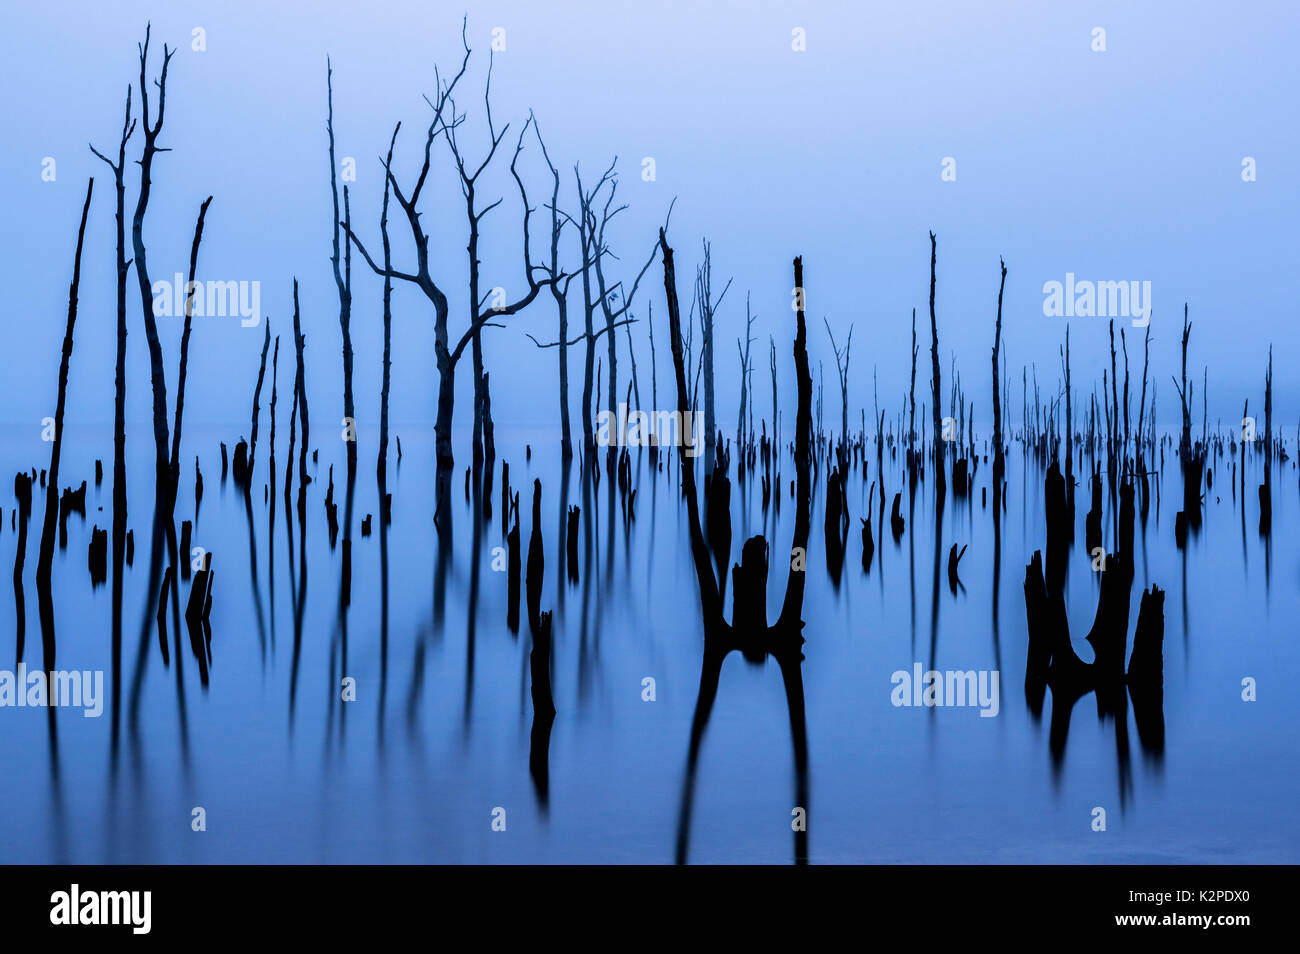 Foggy lake background with a dead trees and their reflections on the foreground. Cool colors and natural mystical scenery - Stock Image